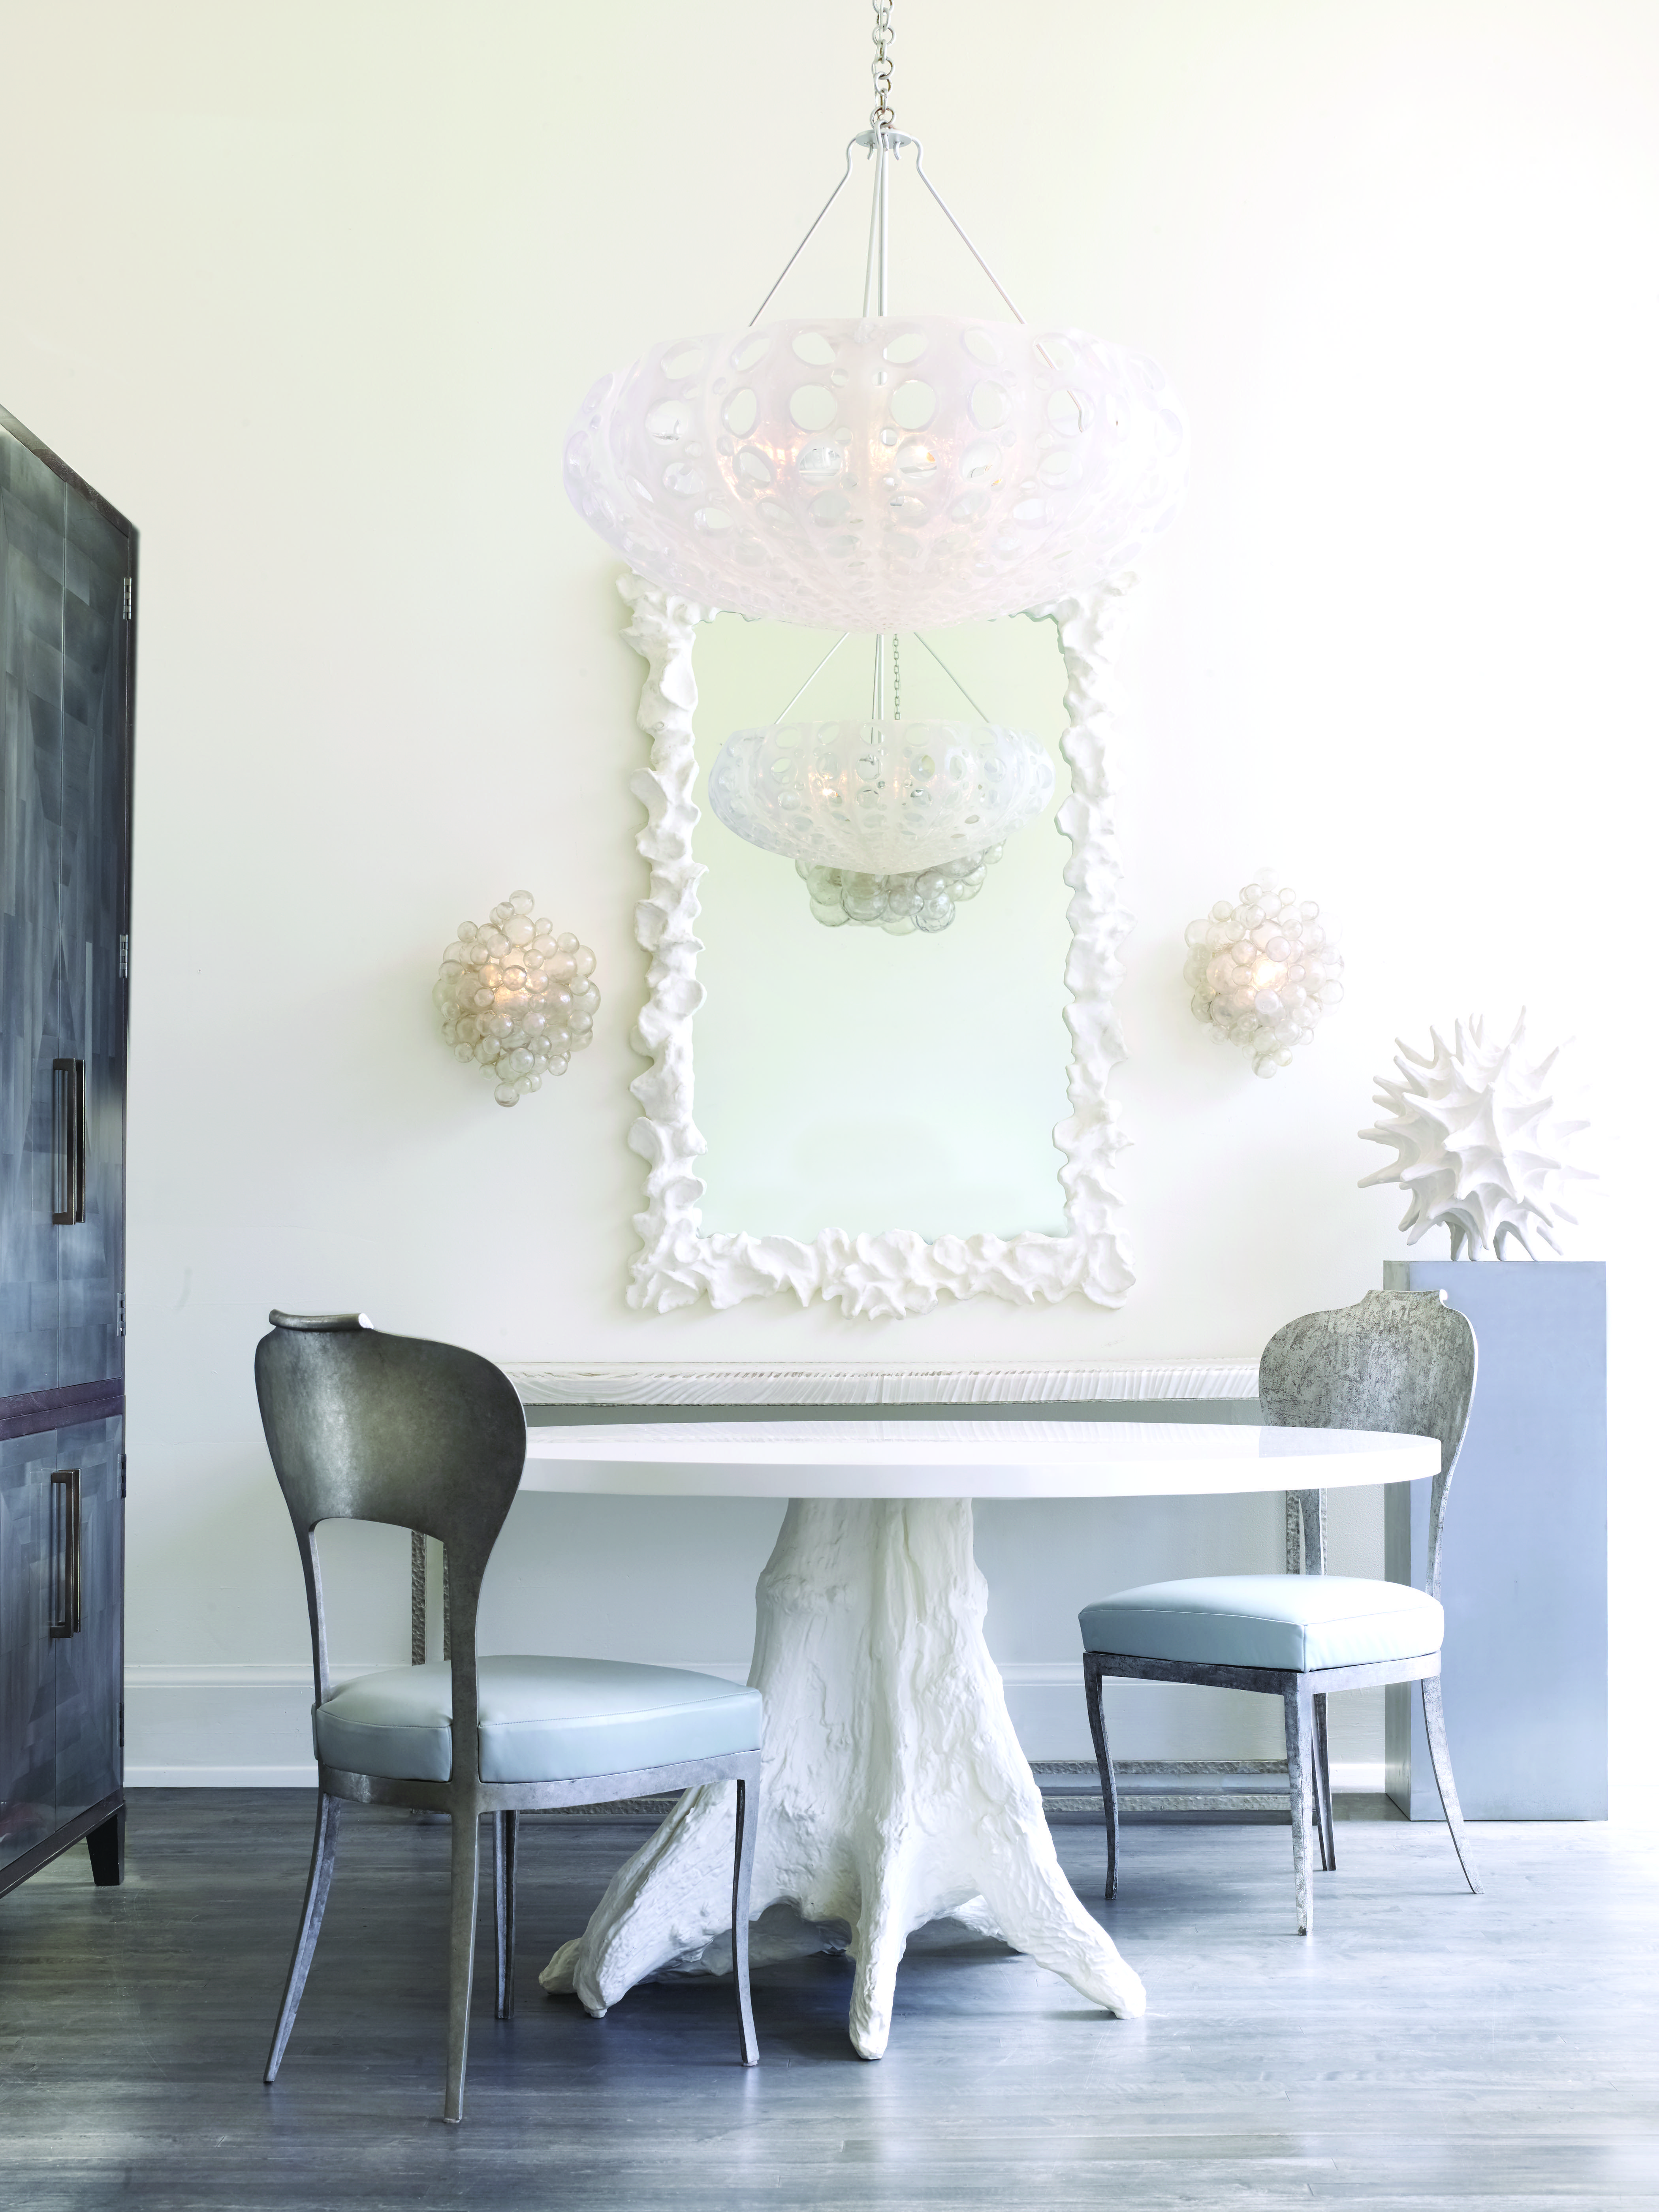 Oly Studio Beck Dining Table In Solid White Cast Resin, Beverly Side Chairs  In Antiqued